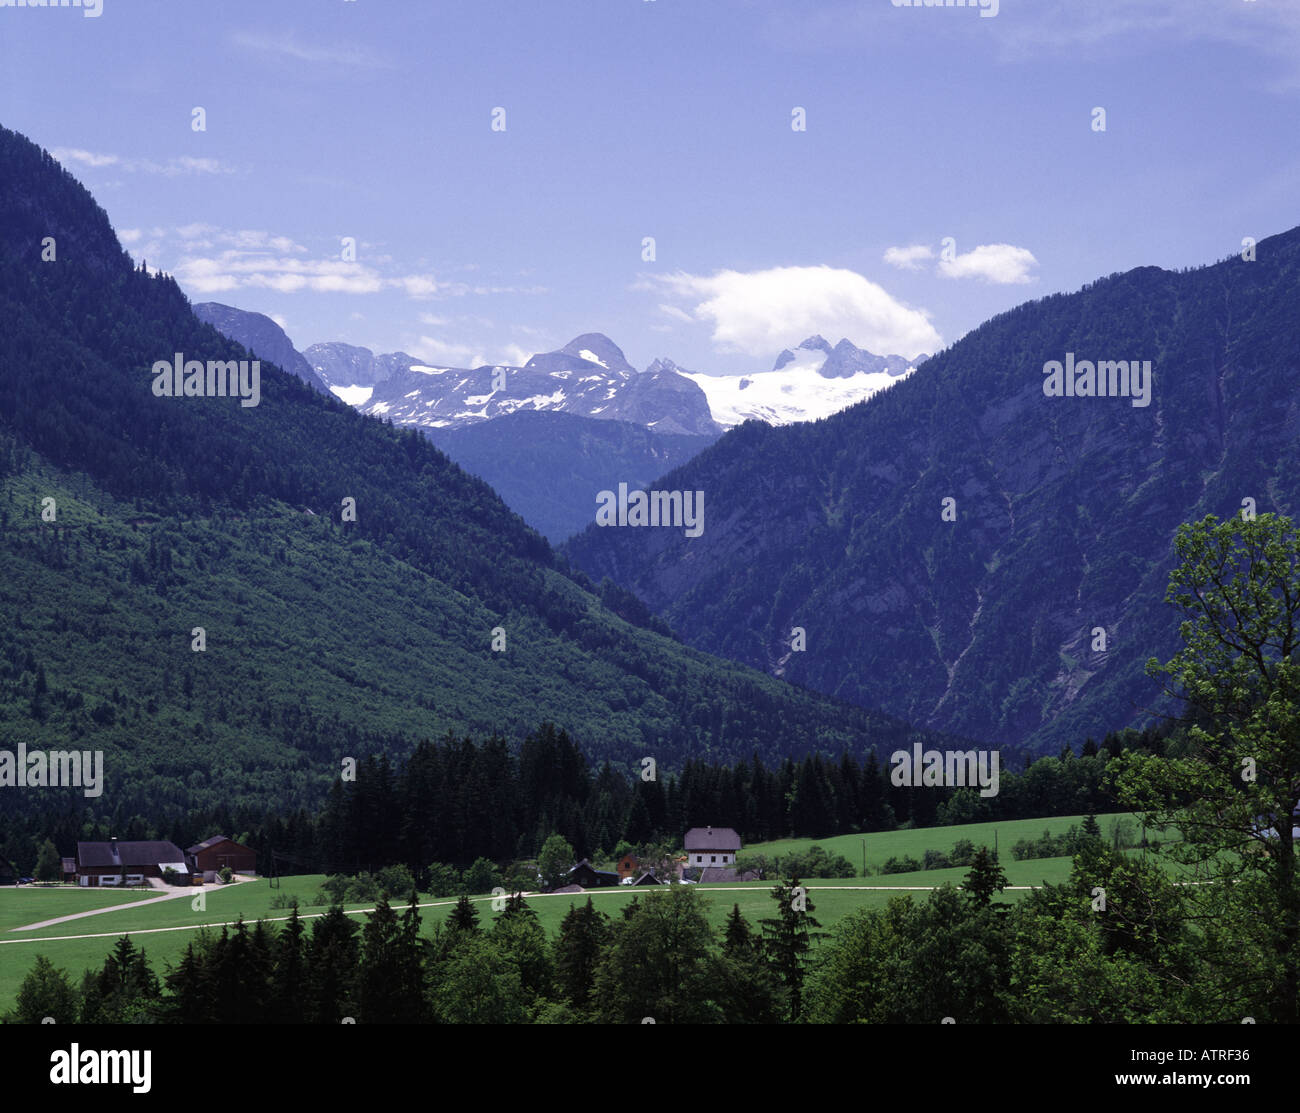 Austria Schladminger Tauern at Forstau and the Dachsteingruppe Alps Stock Photo